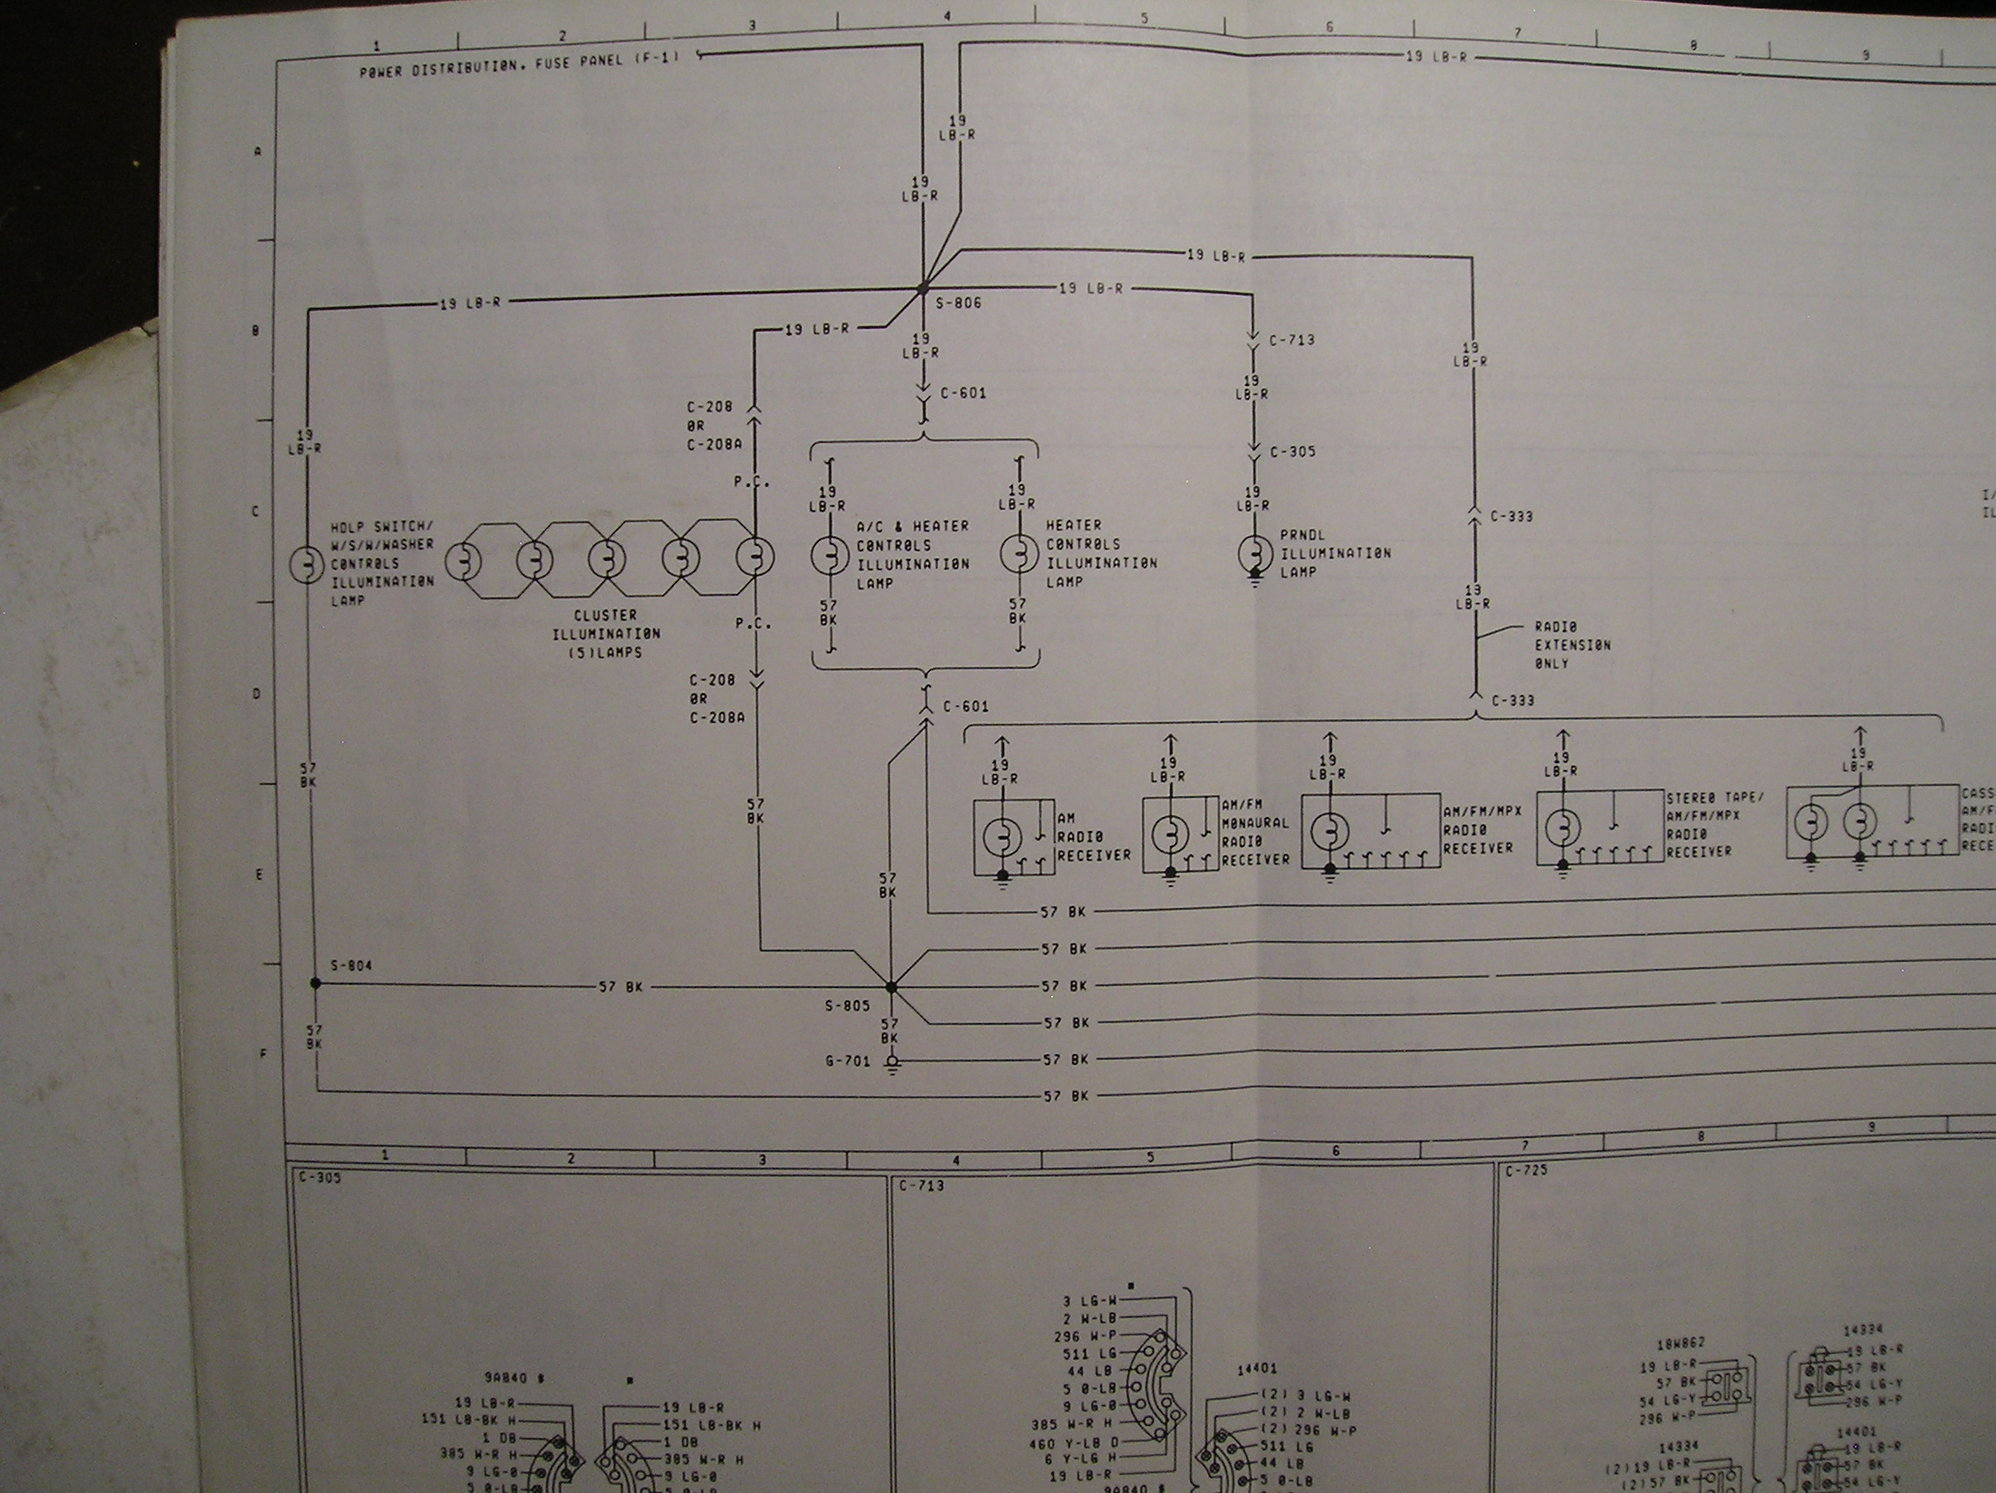 1982 f100 cluster connector wiring diagram - Ford Truck ...